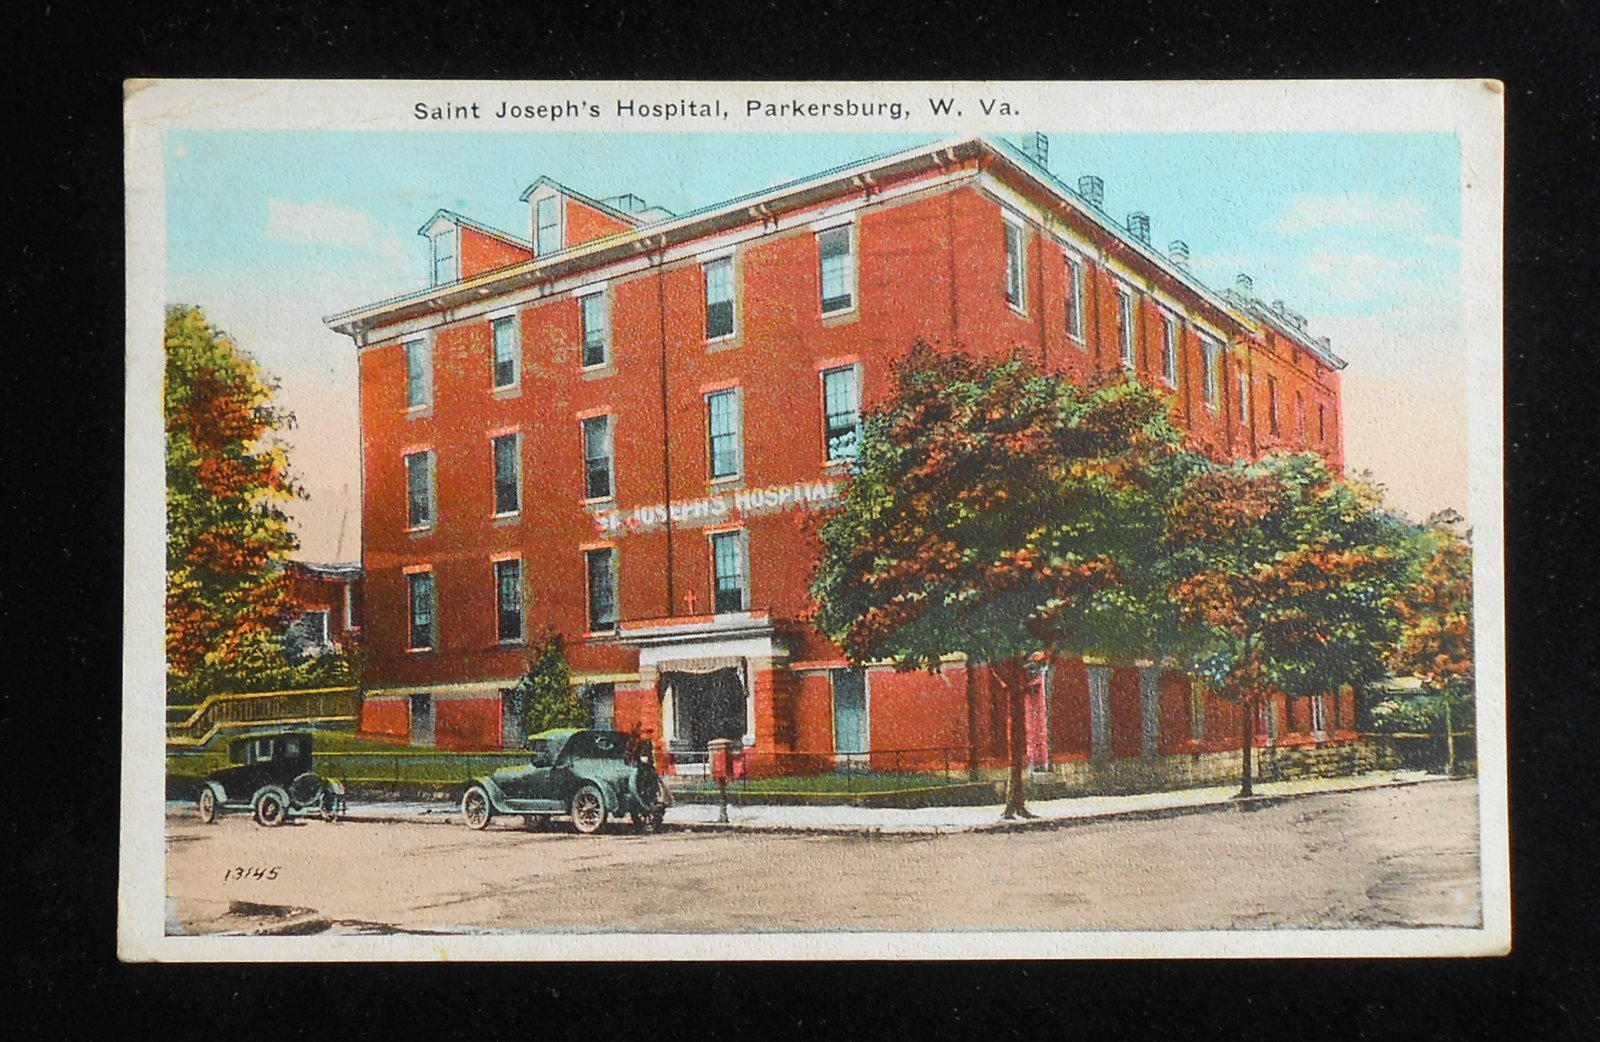 1923 saint joseph 39 s hospital old cars parkersburg wv wood co postcard ebay. Black Bedroom Furniture Sets. Home Design Ideas